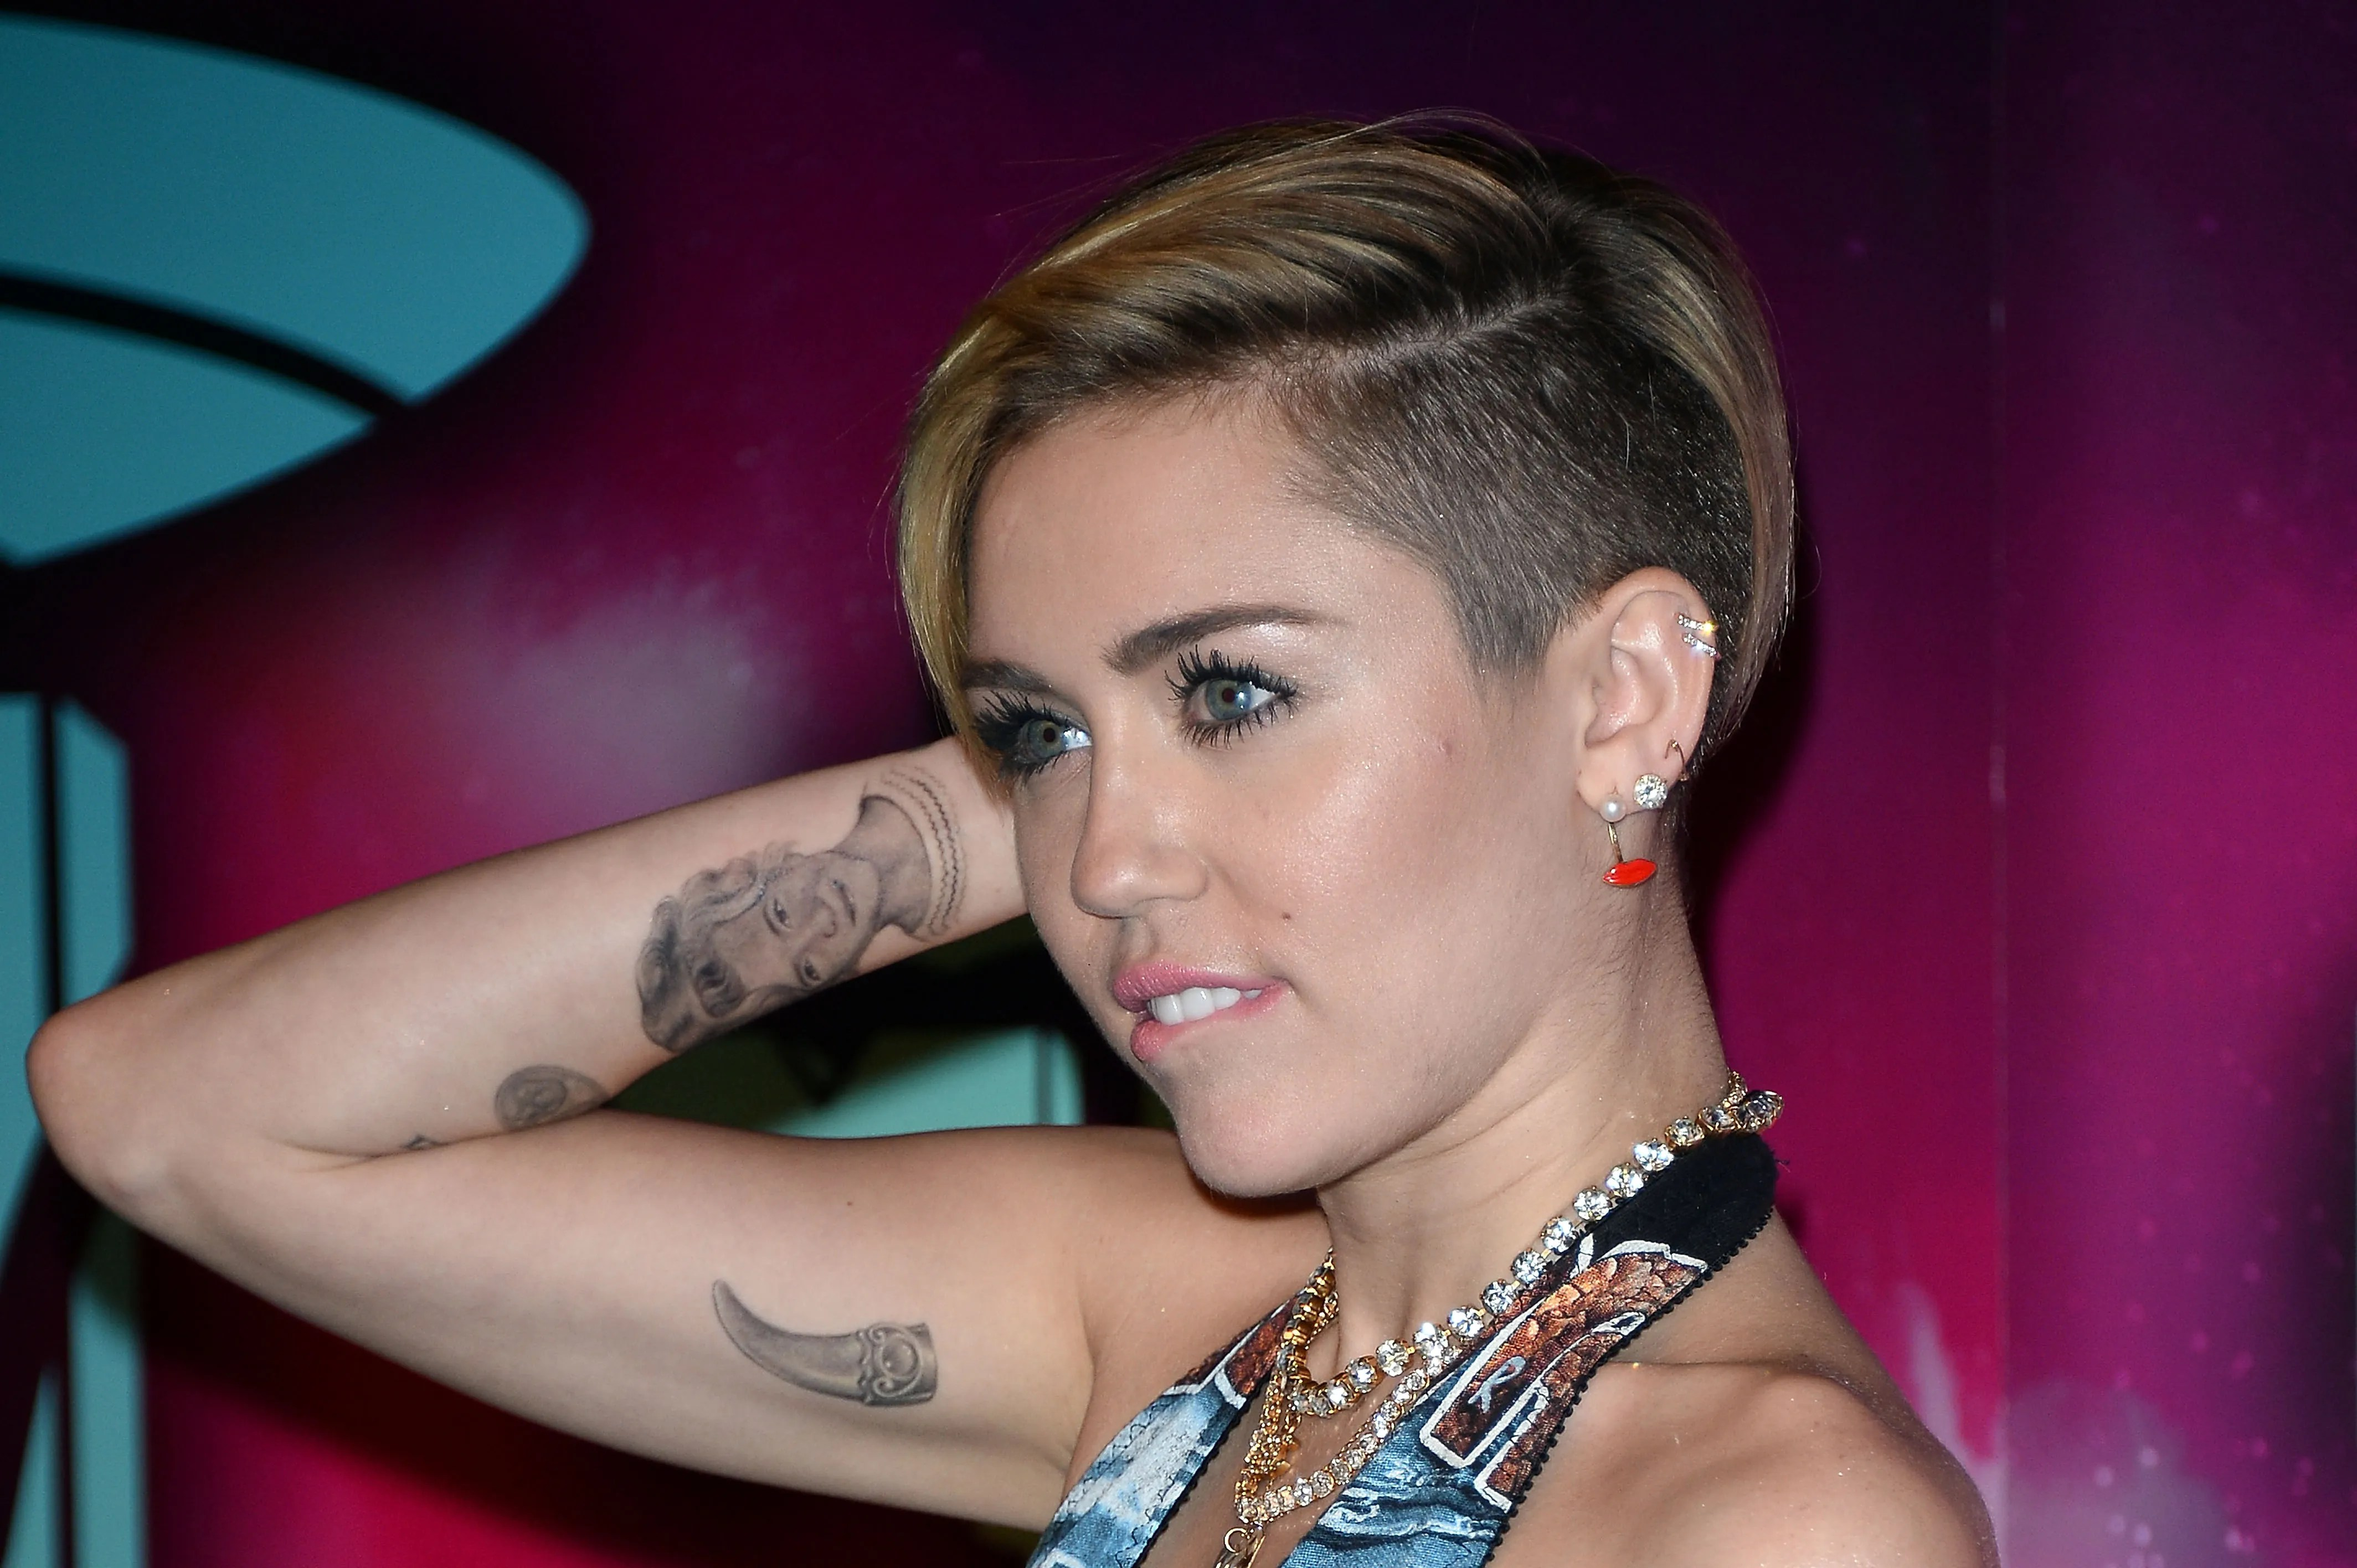 Miley Cyrus Just Got A New Tattoo In Honor Of Liam